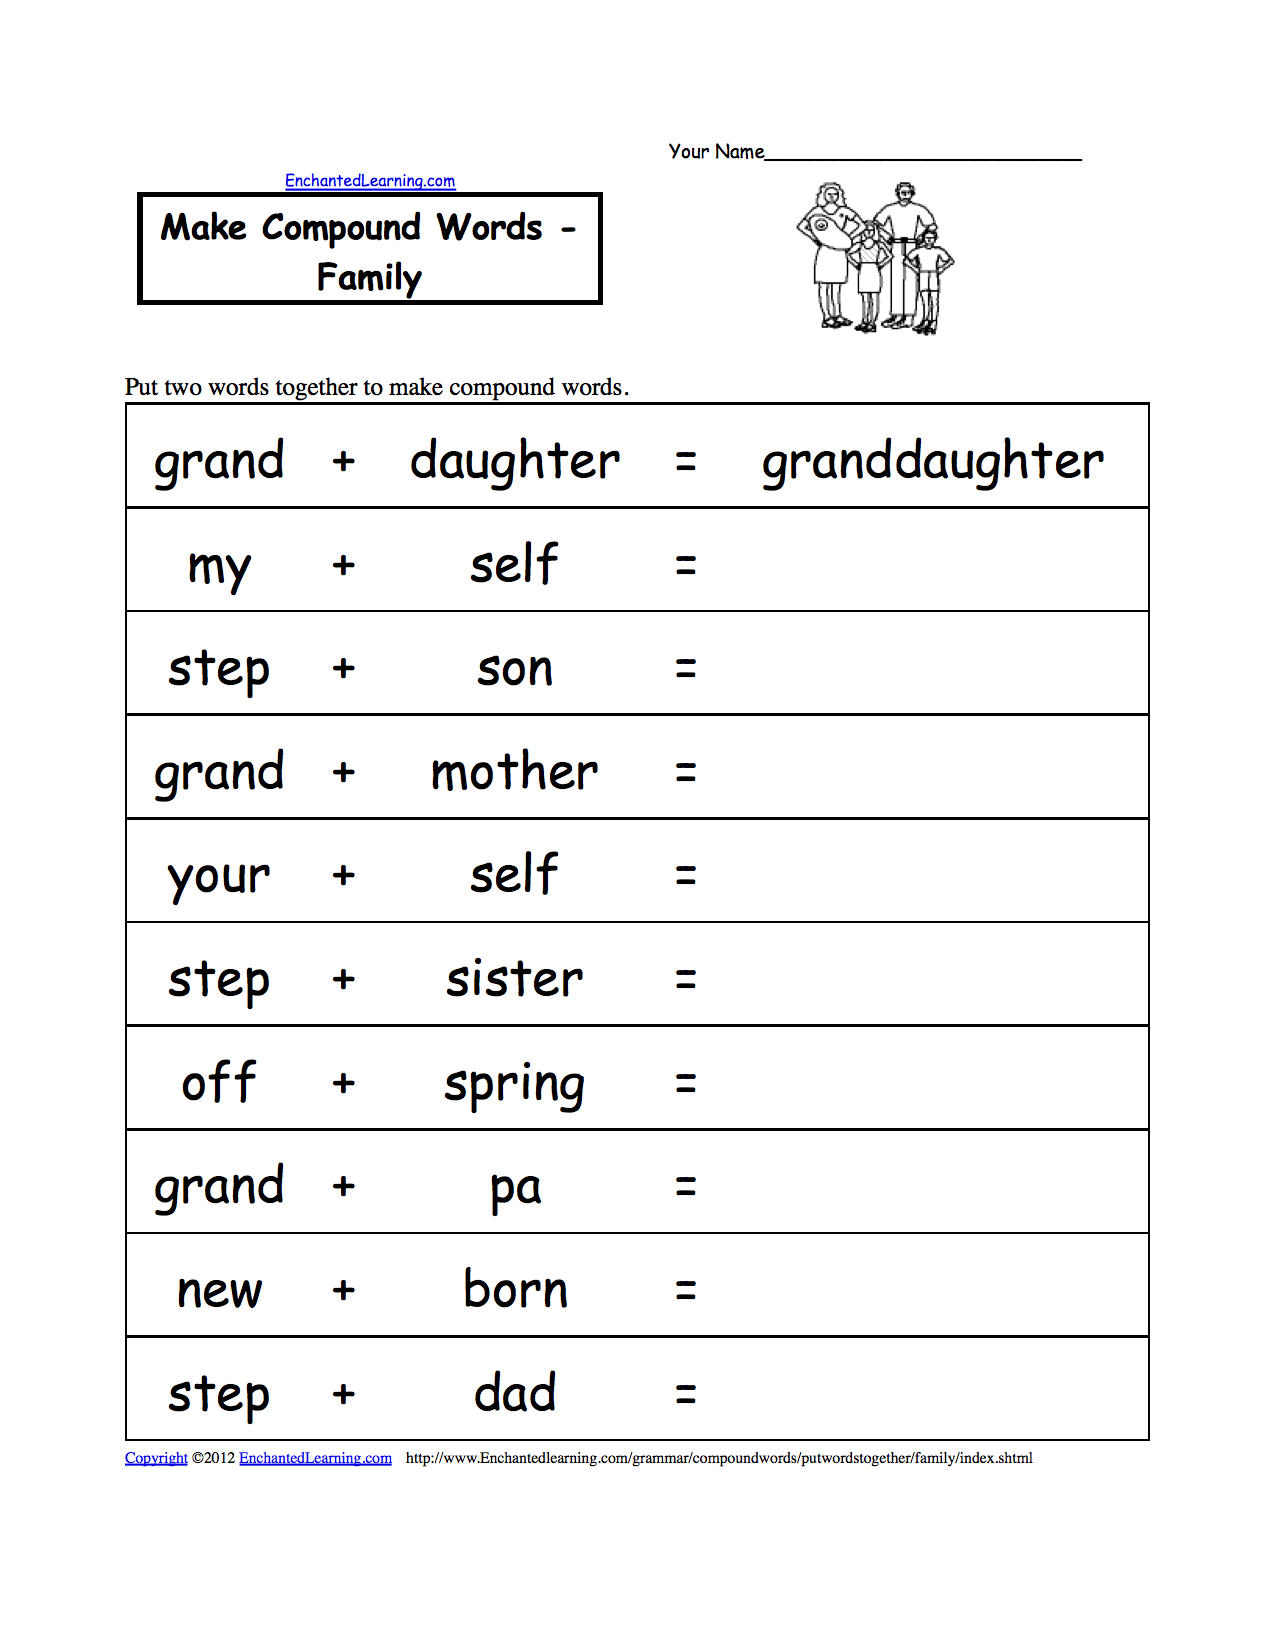 Family Theme Page Spelling Worksheets at EnchantedLearning